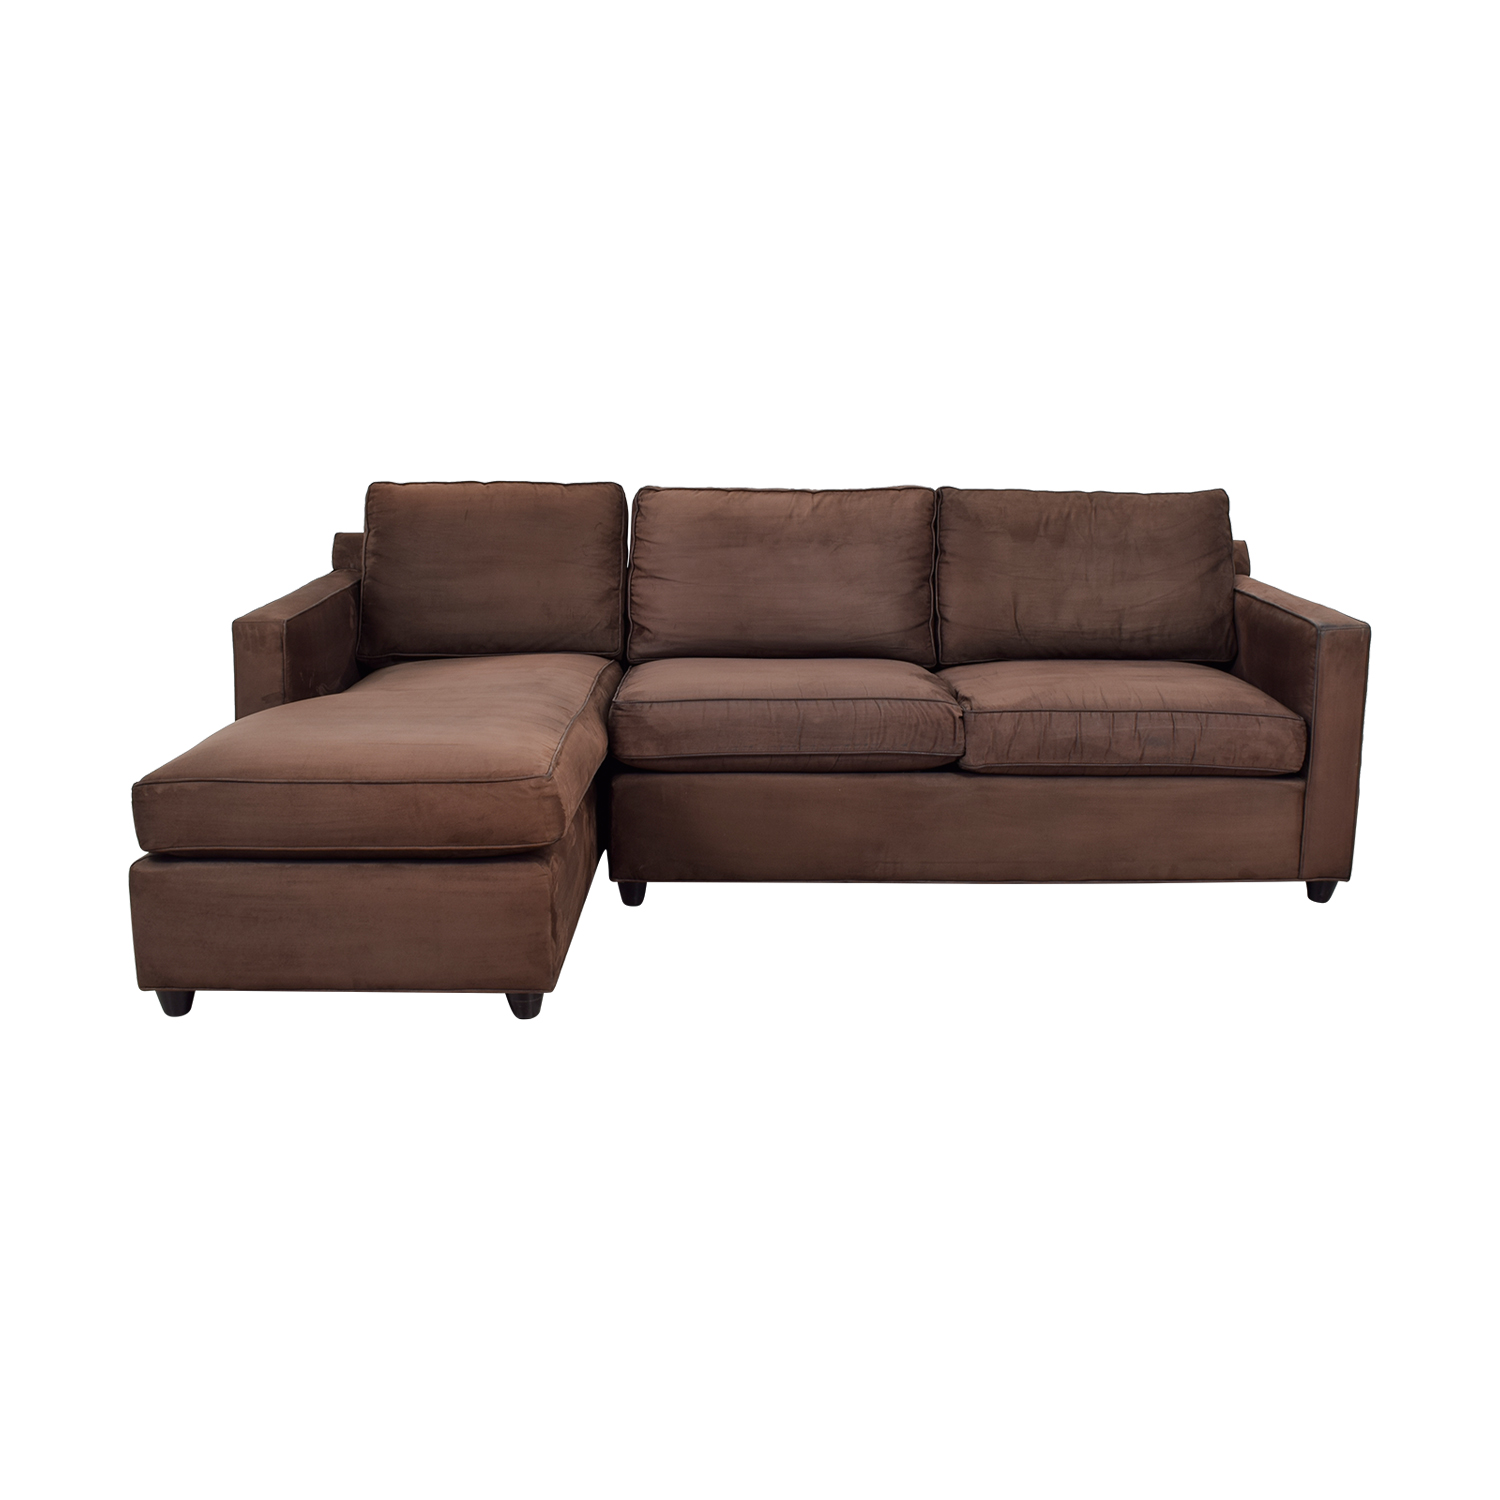 Crate & Barrel Crate & Barrel Diplomat Brown Sectional on sale